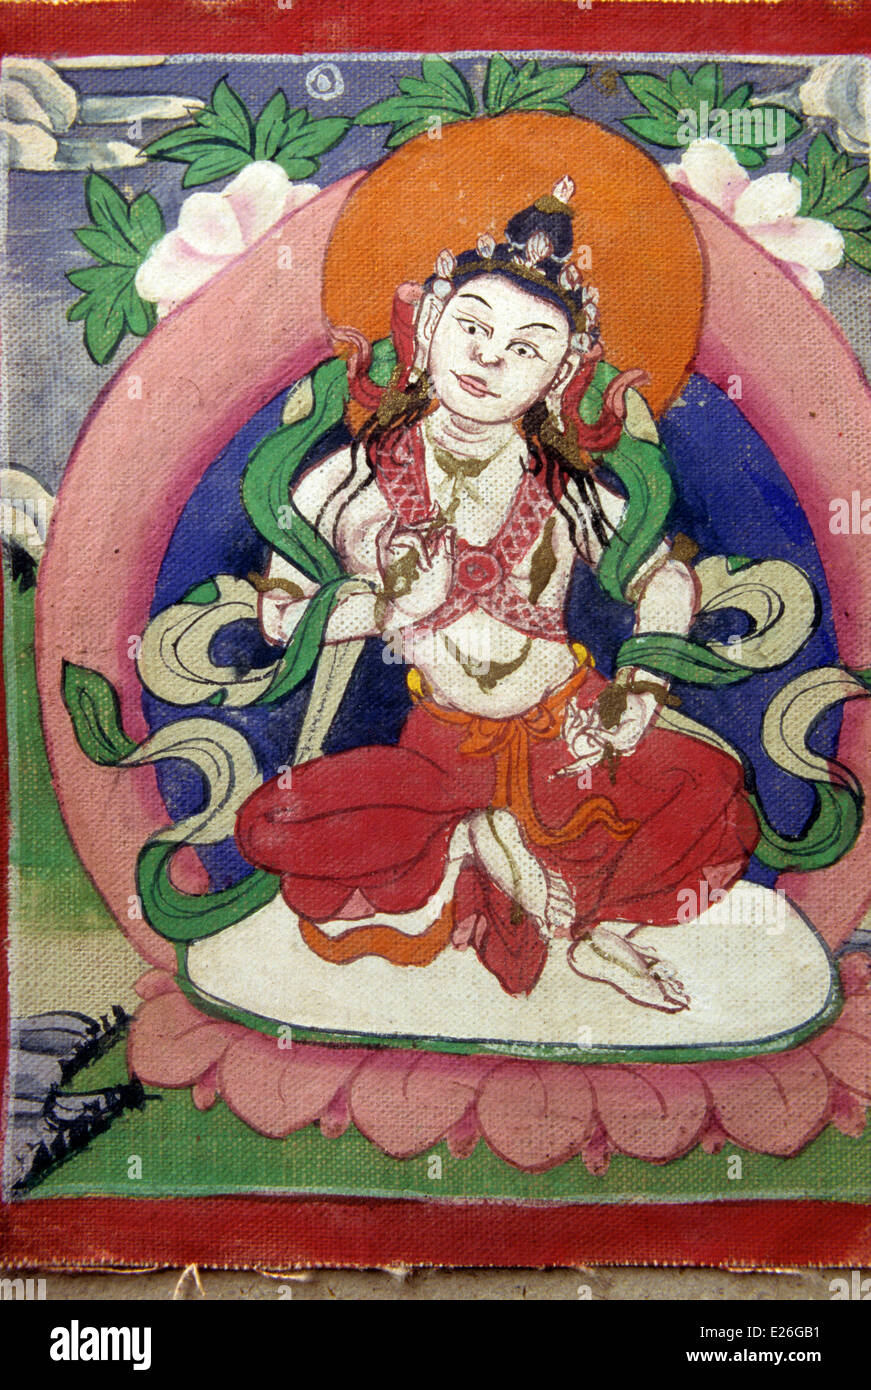 tibet,buddha Dorje Sempa,tempera comes from old prayer book,darjeeling,private collection - Stock Image